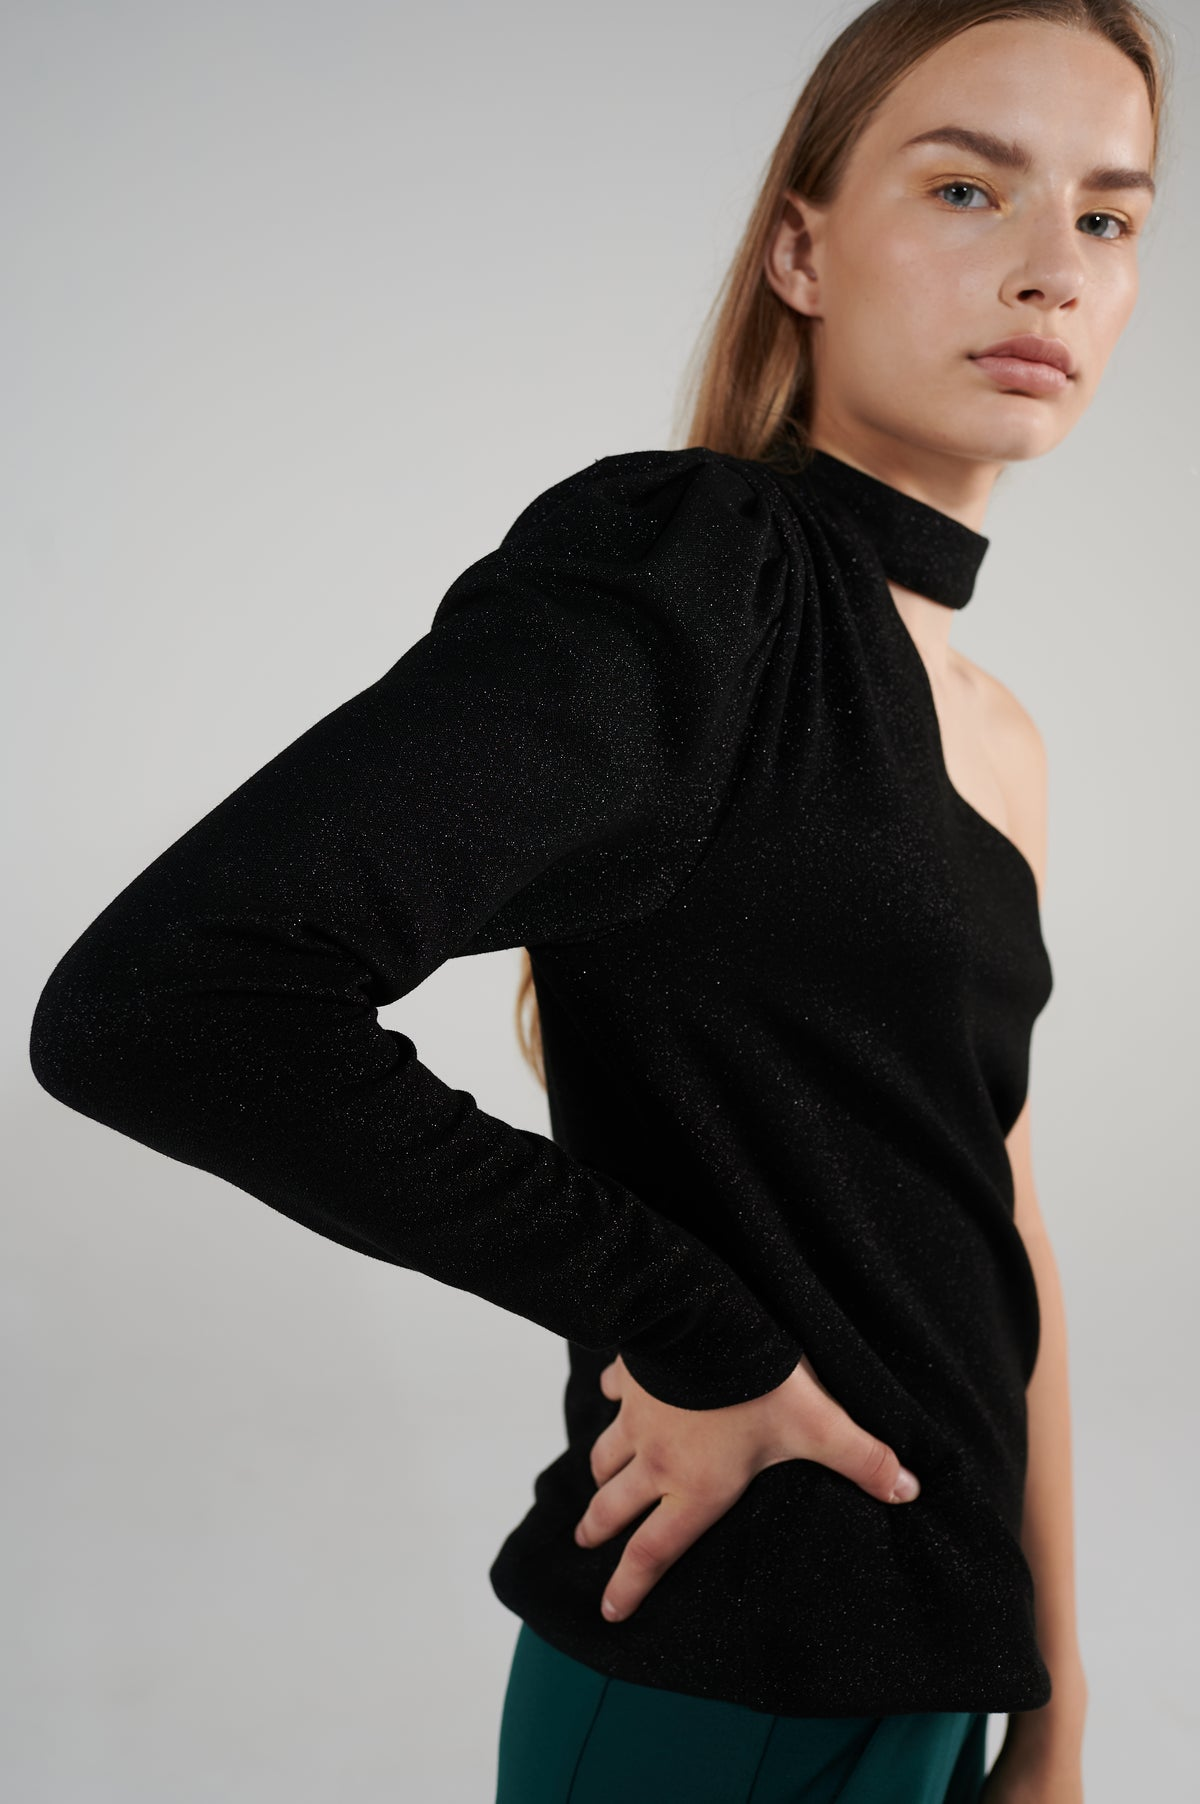 soigne-one-shoulder-top-black-lookbook-le-slap.jpg